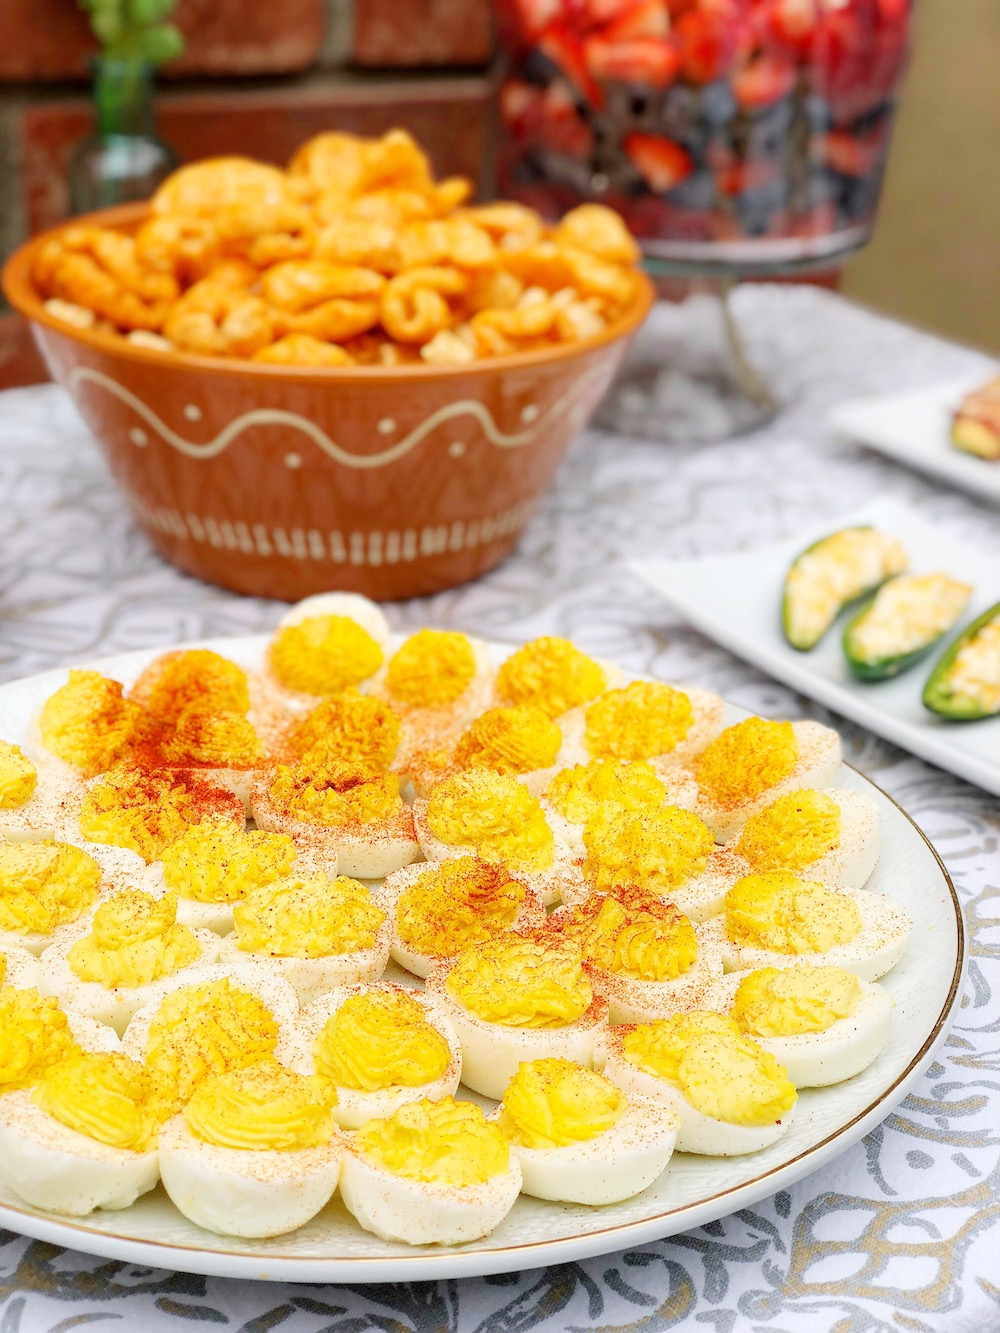 deviled eggs and pork rinds on table - livingmividaloca.com